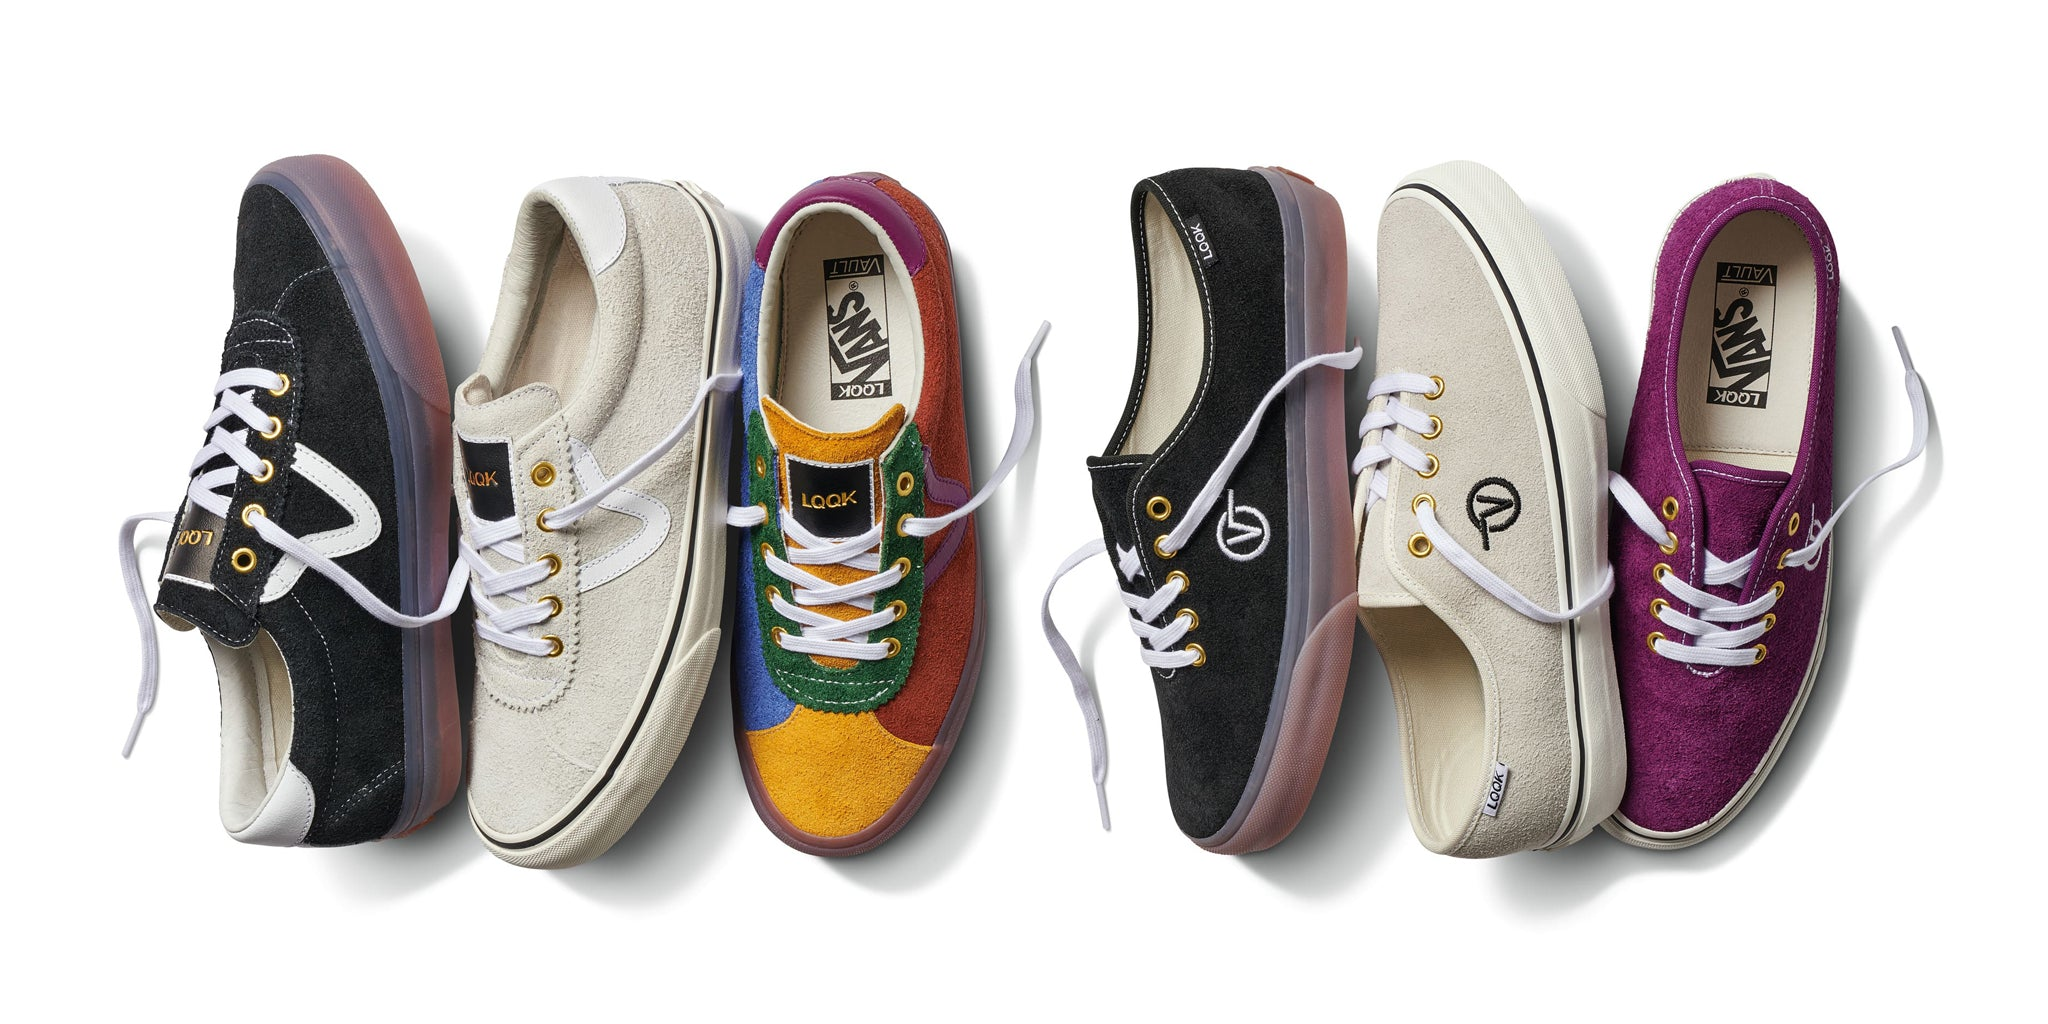 NEW ARRIVALS: LQQK Studio x Vans Vault Collection